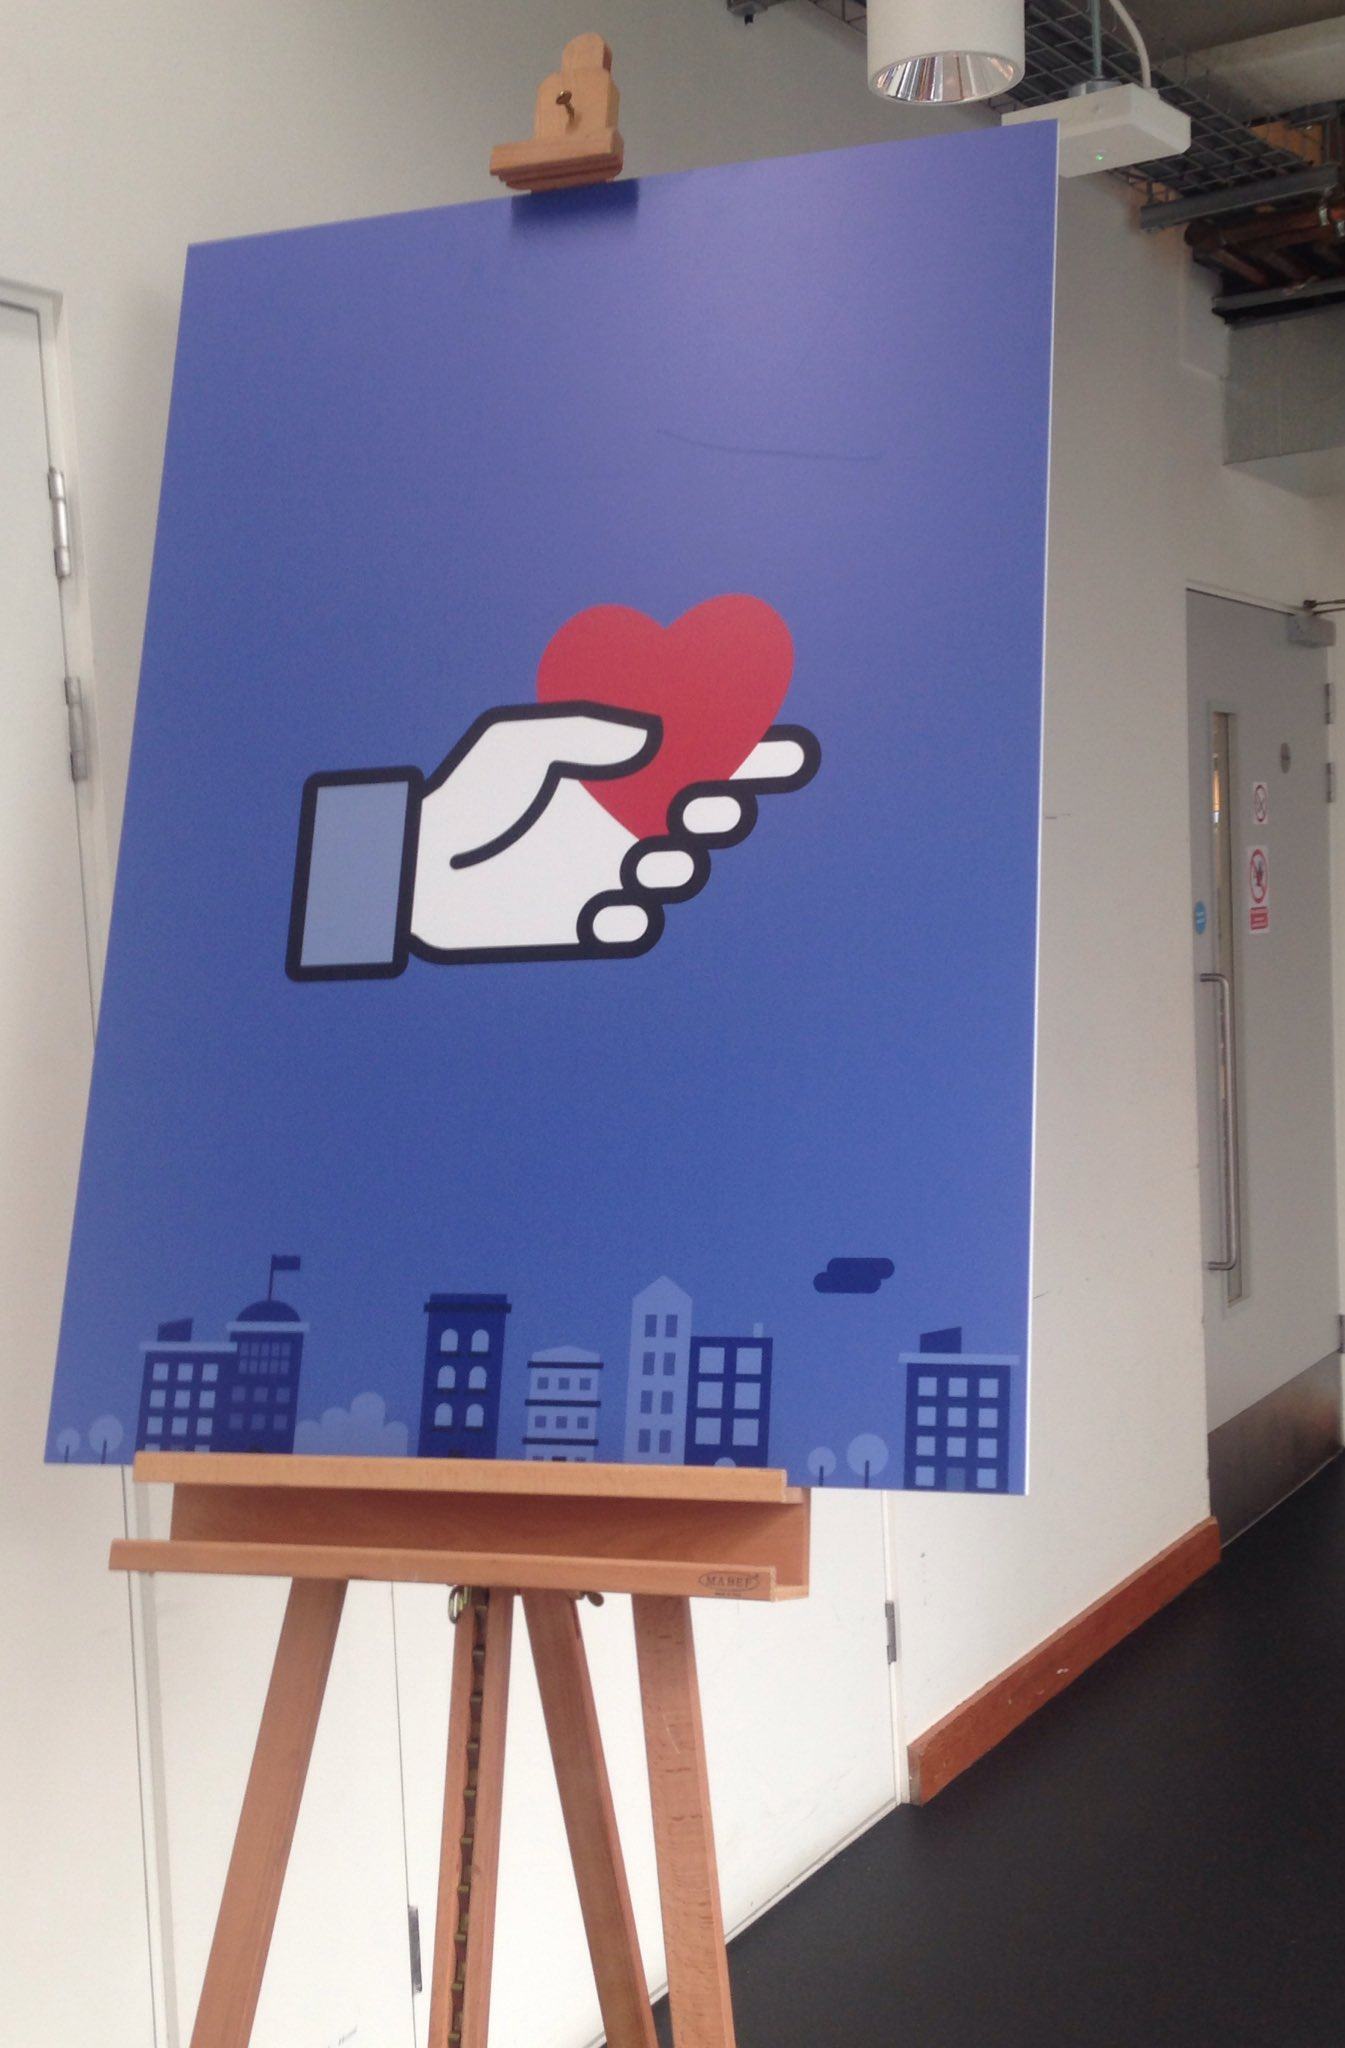 Thrilled to be at social good summit talking all things Facebook and Instagram at @facebook London. Thanks @MisfitsMedia #FBsocialgood https://t.co/94tcBZw34c